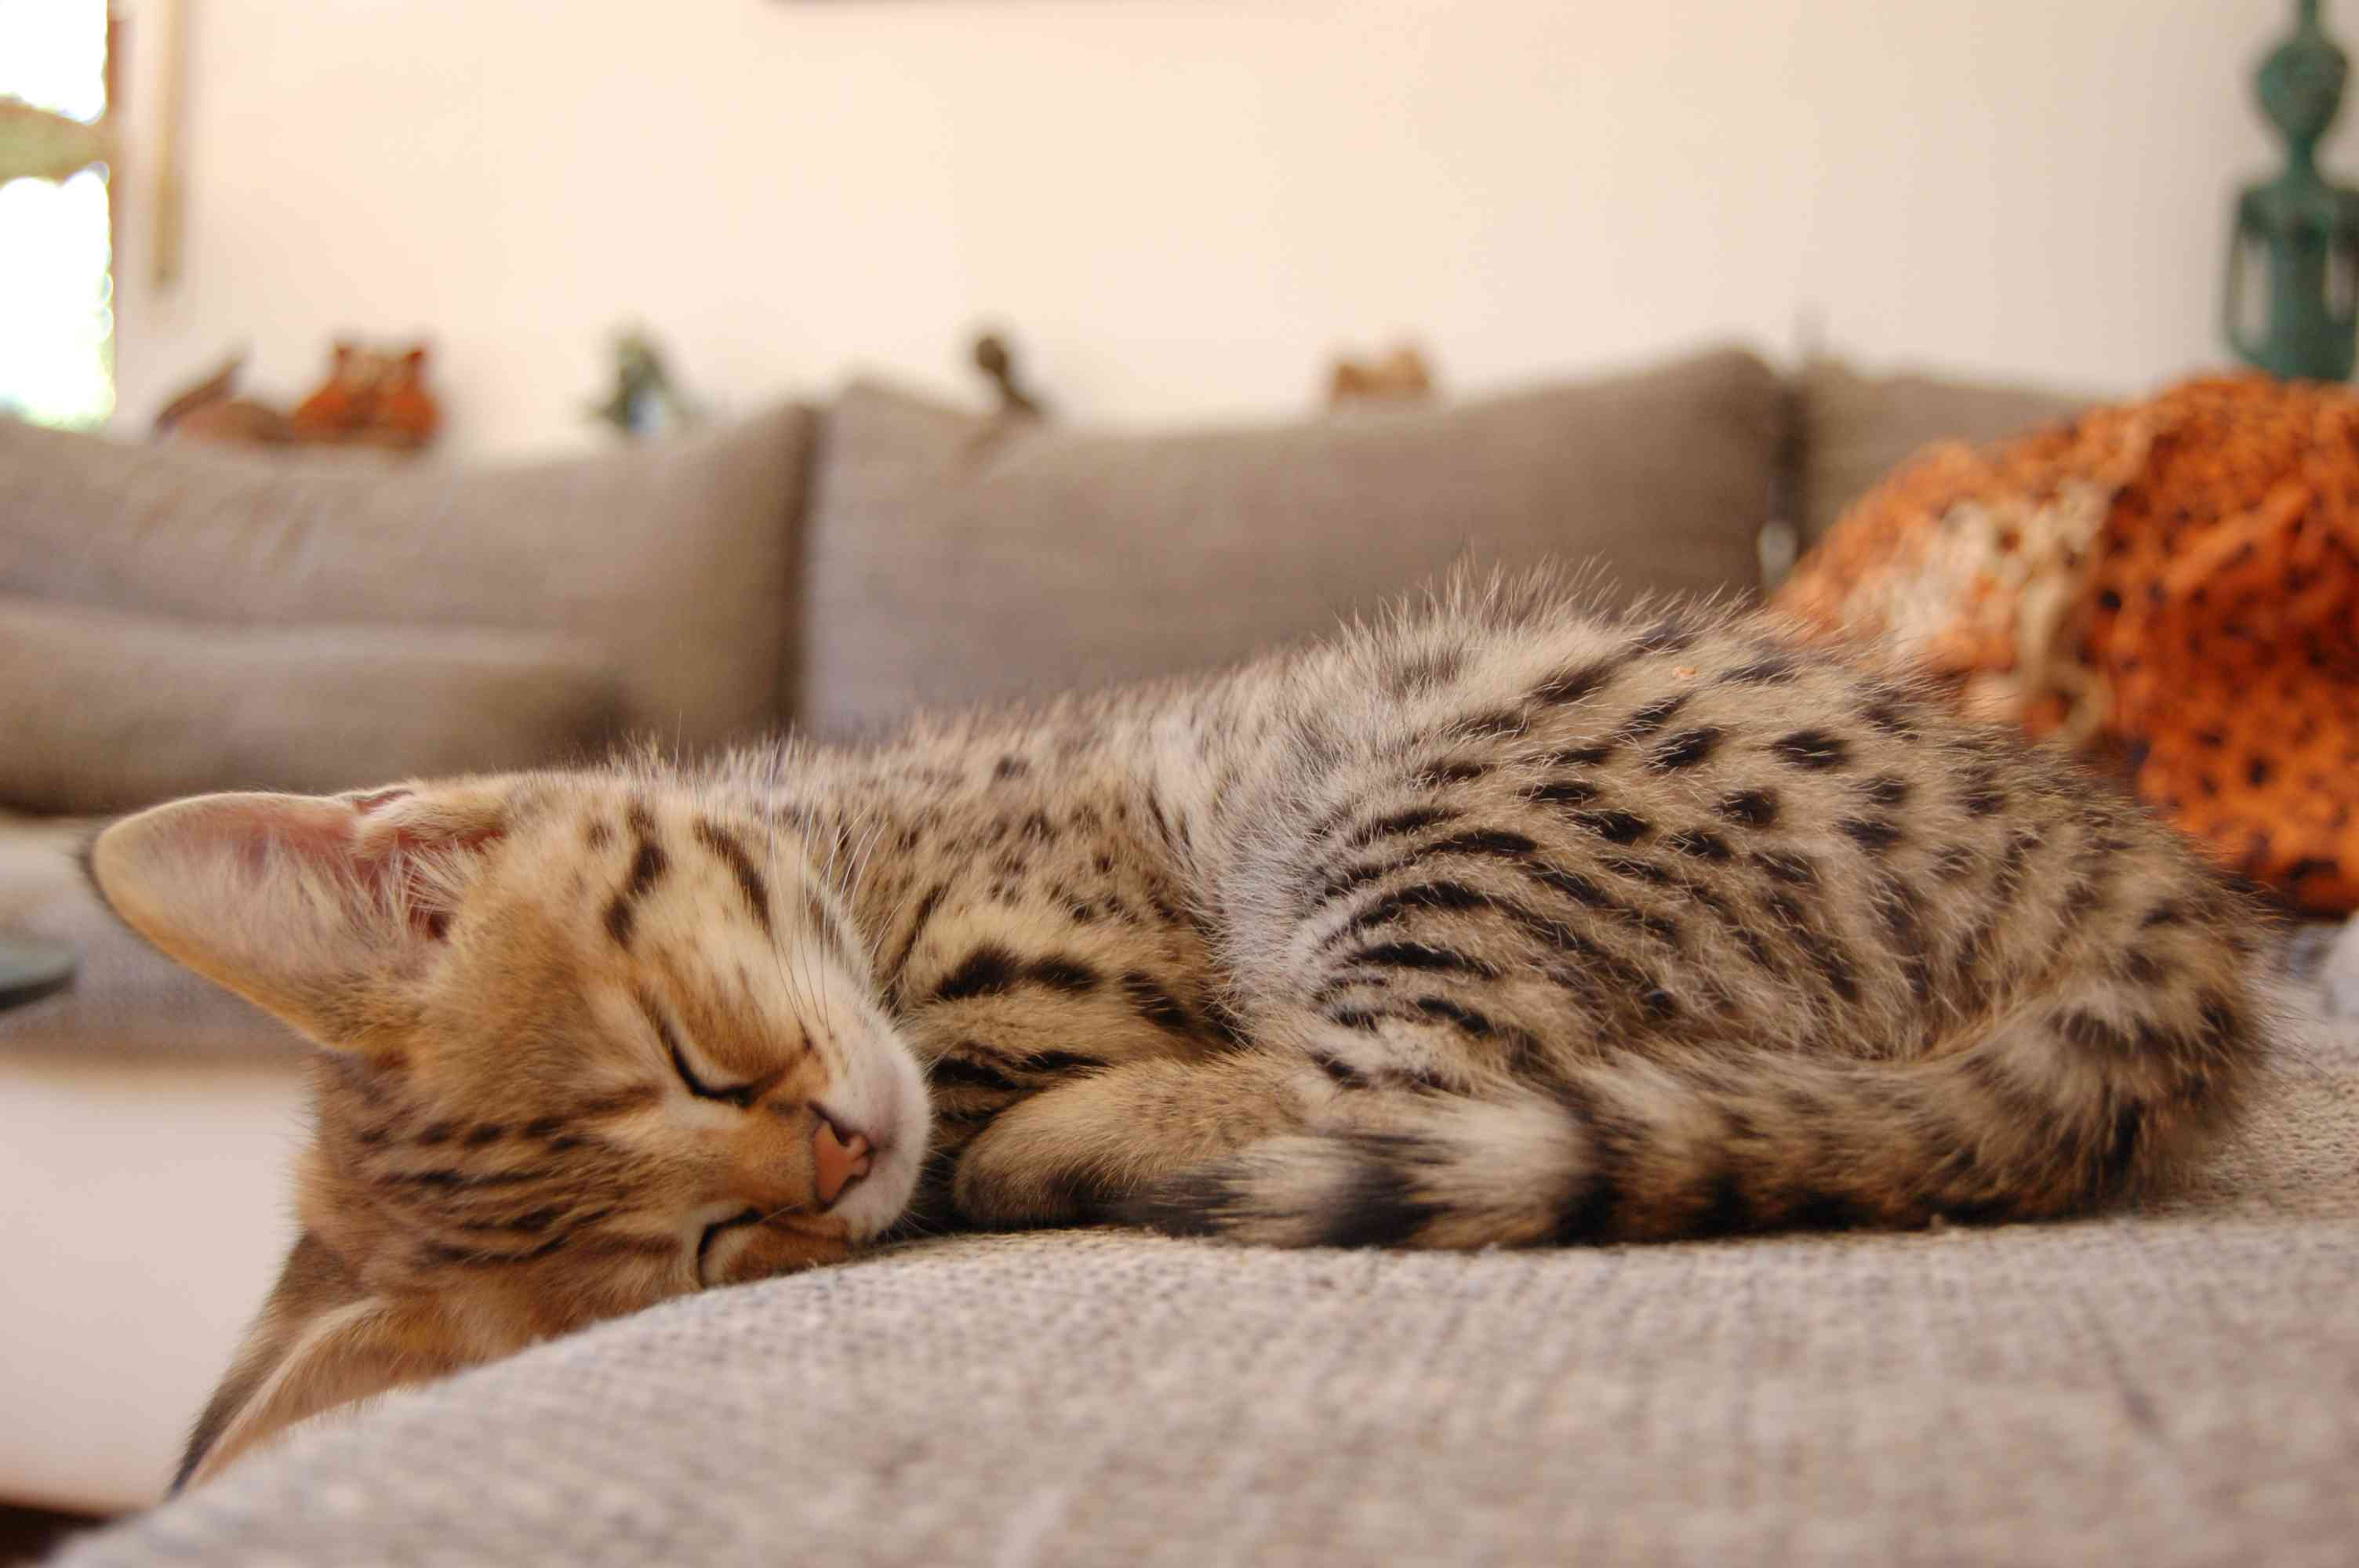 Savannah cat sleeping on sofa showing spotted coat and big ears